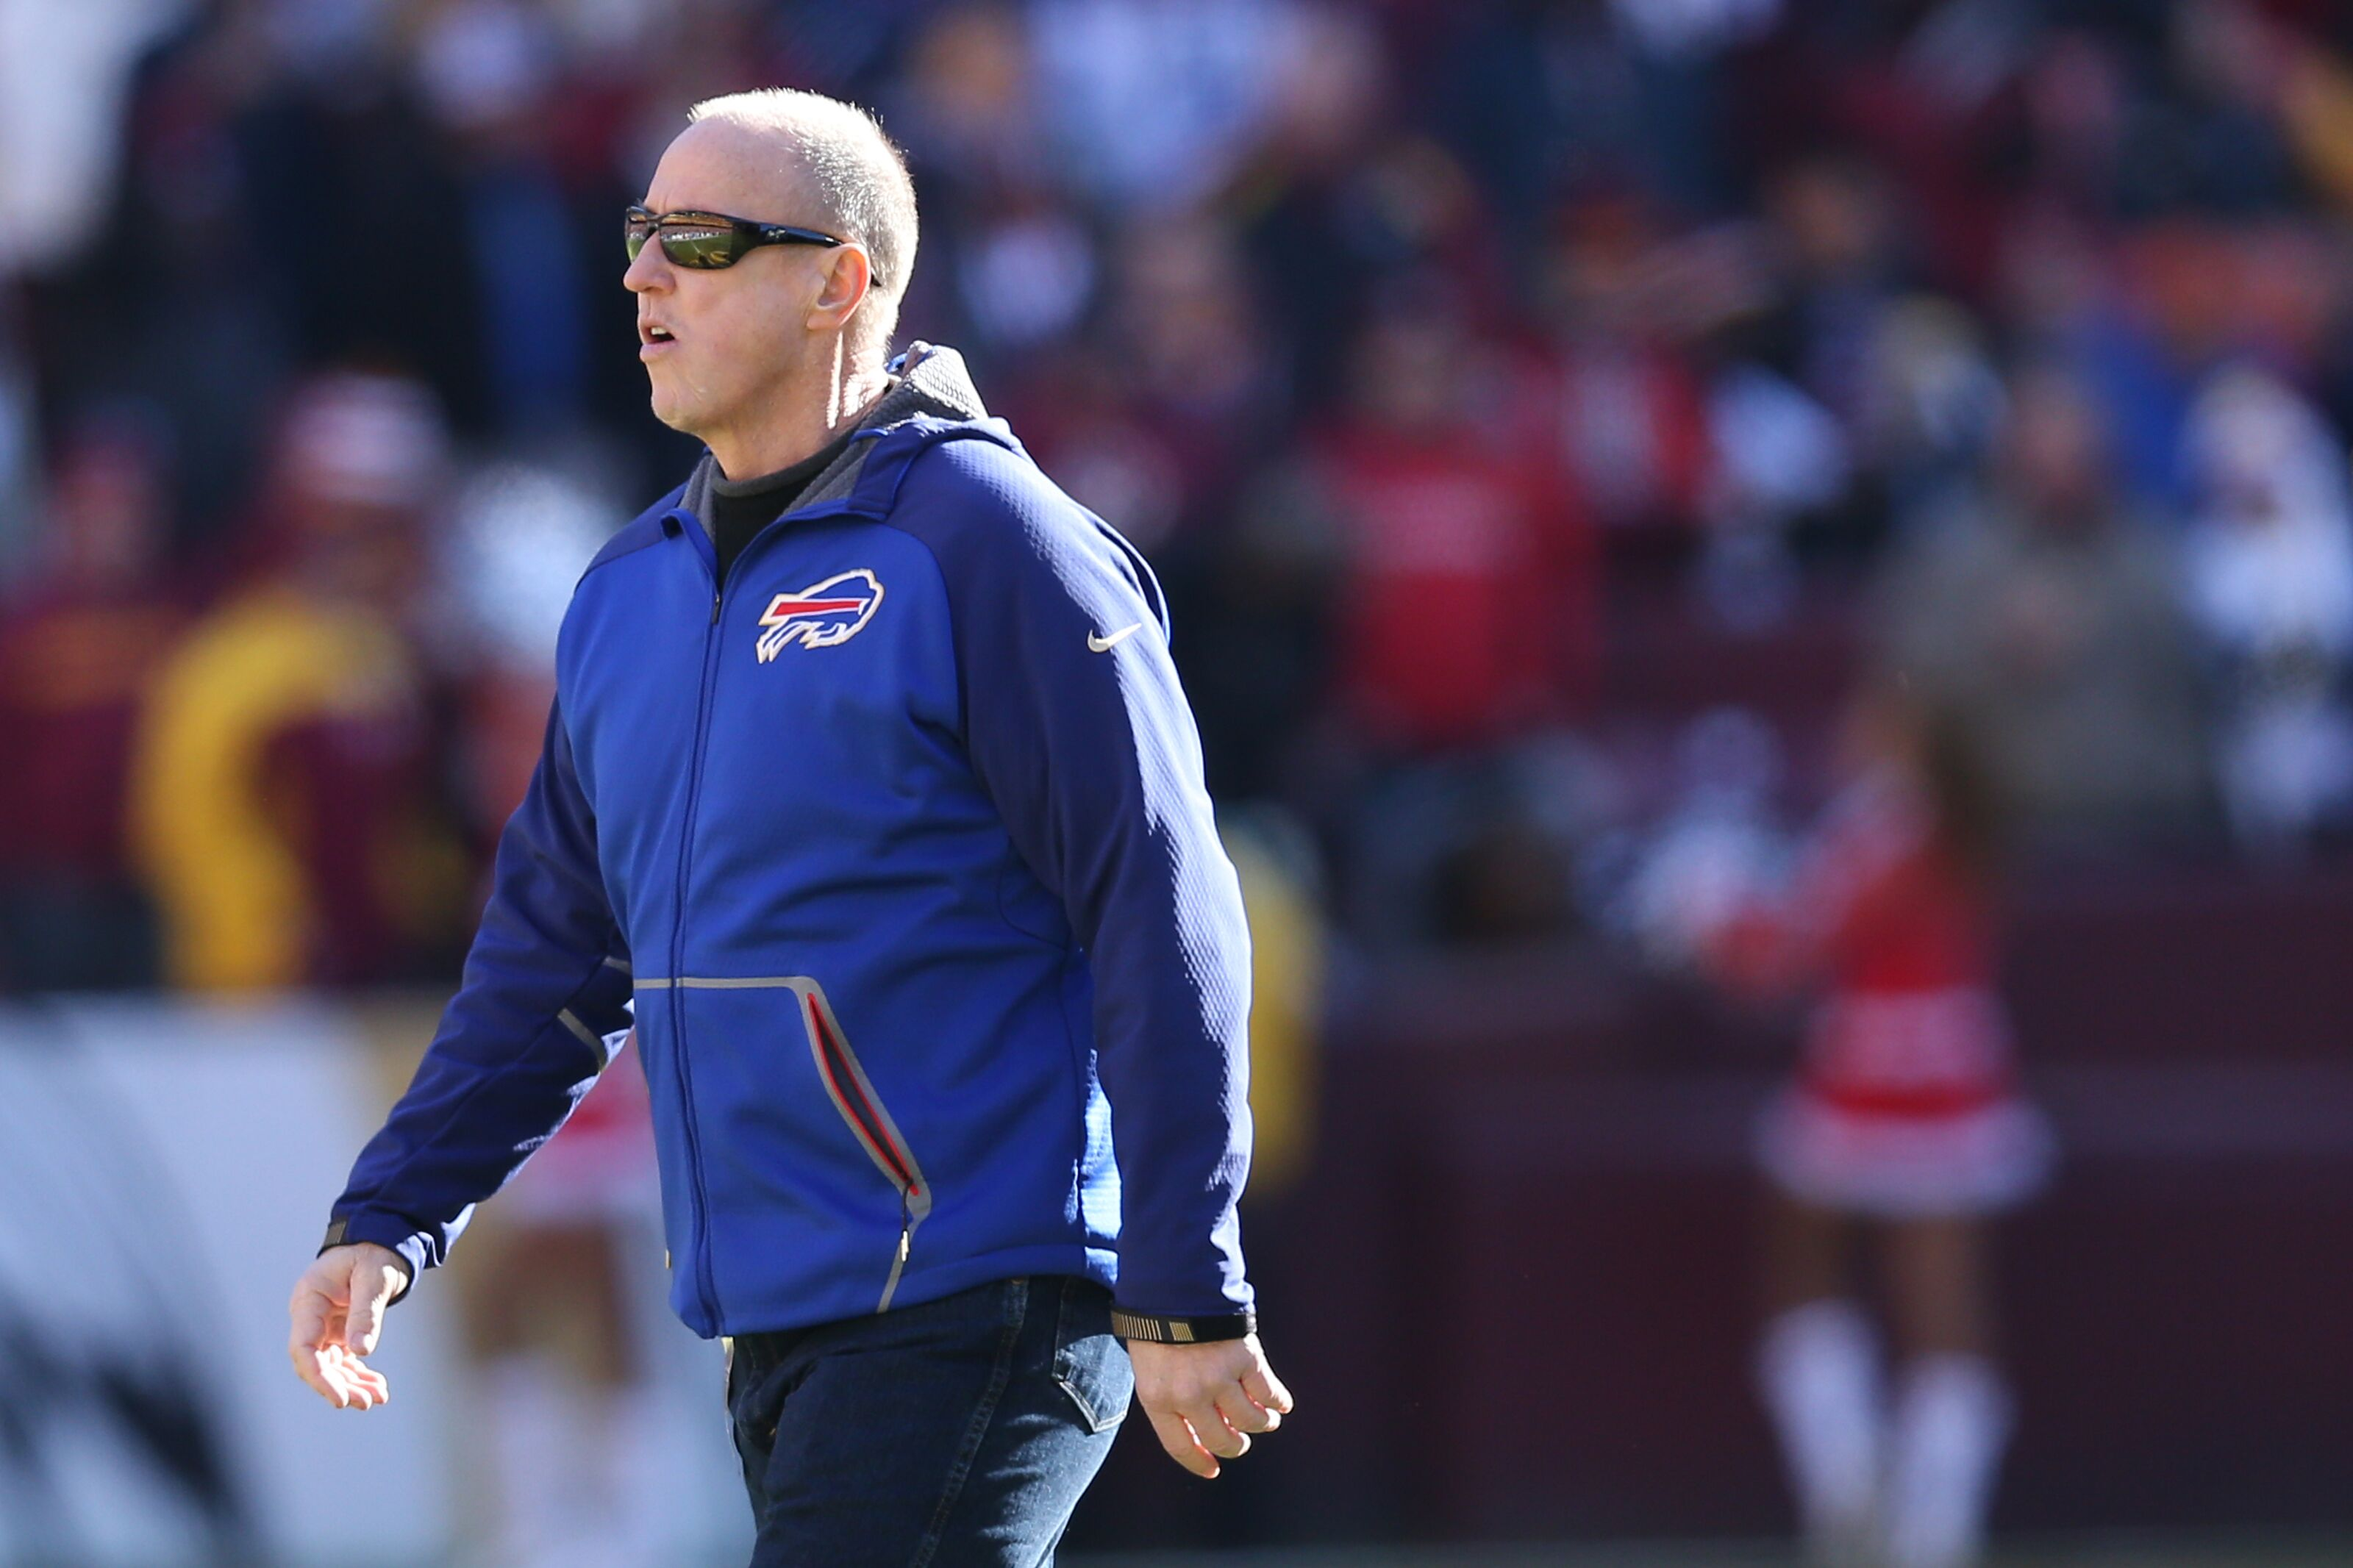 Buffalo Bills: A cool Pro Bowl honor for Jim Kelly in 2019